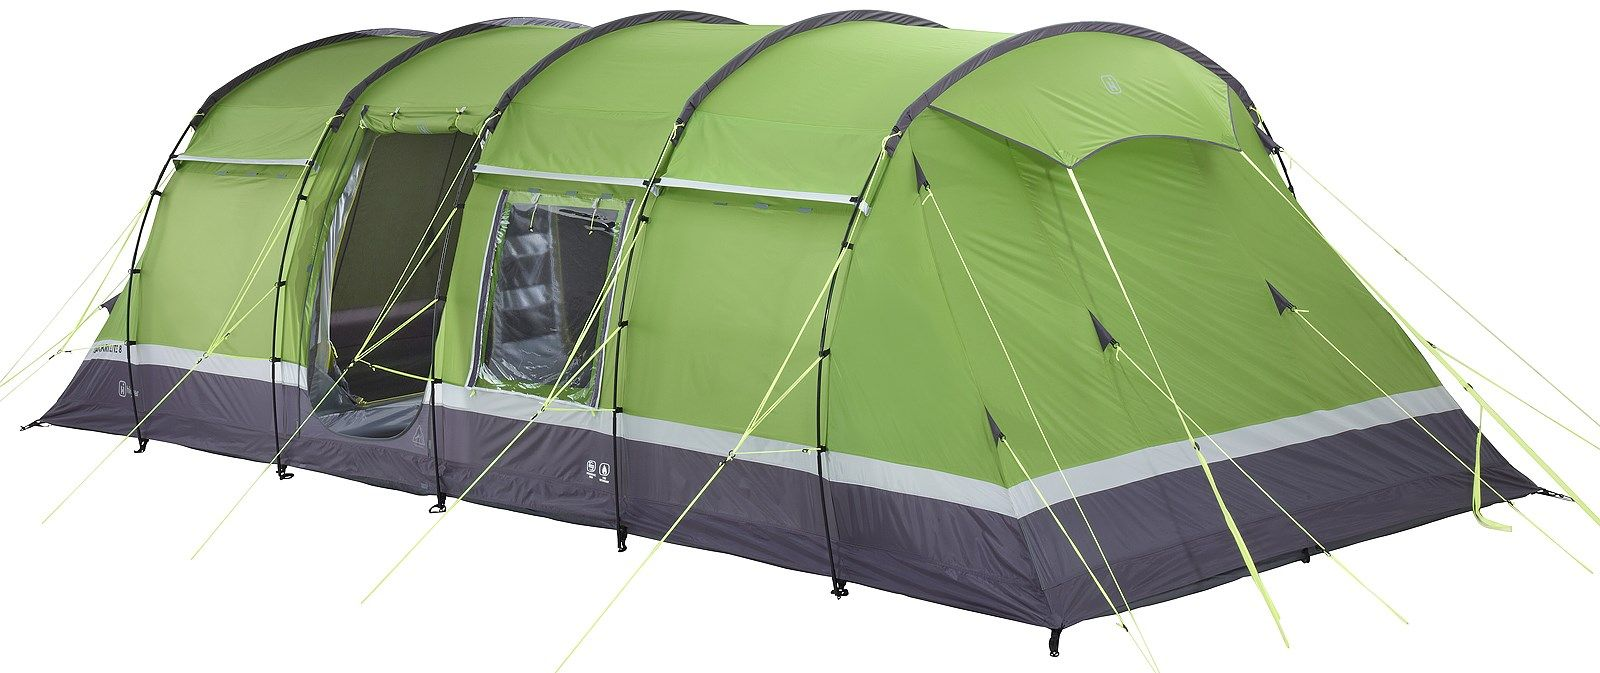 Hi Gearu0027s popular large tunnel tent perfect for relaxed c&ing holidays with all the family  sc 1 st  Pinterest & Hi Gearu0027s popular large tunnel tent perfect for relaxed camping ...